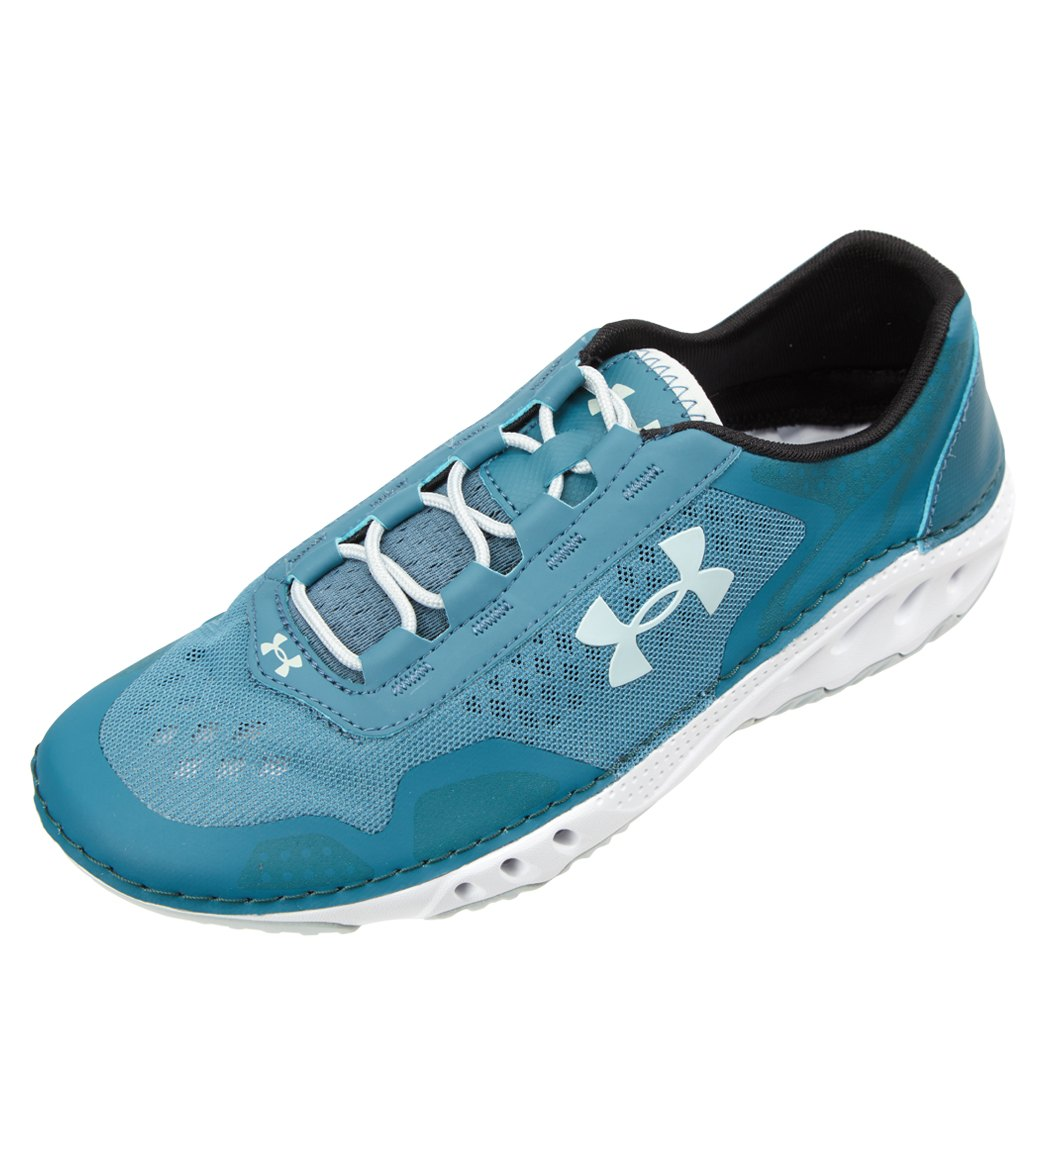 b7a36382a191 Under Armour Women s Drainster Water Shoe at SwimOutlet.com ...